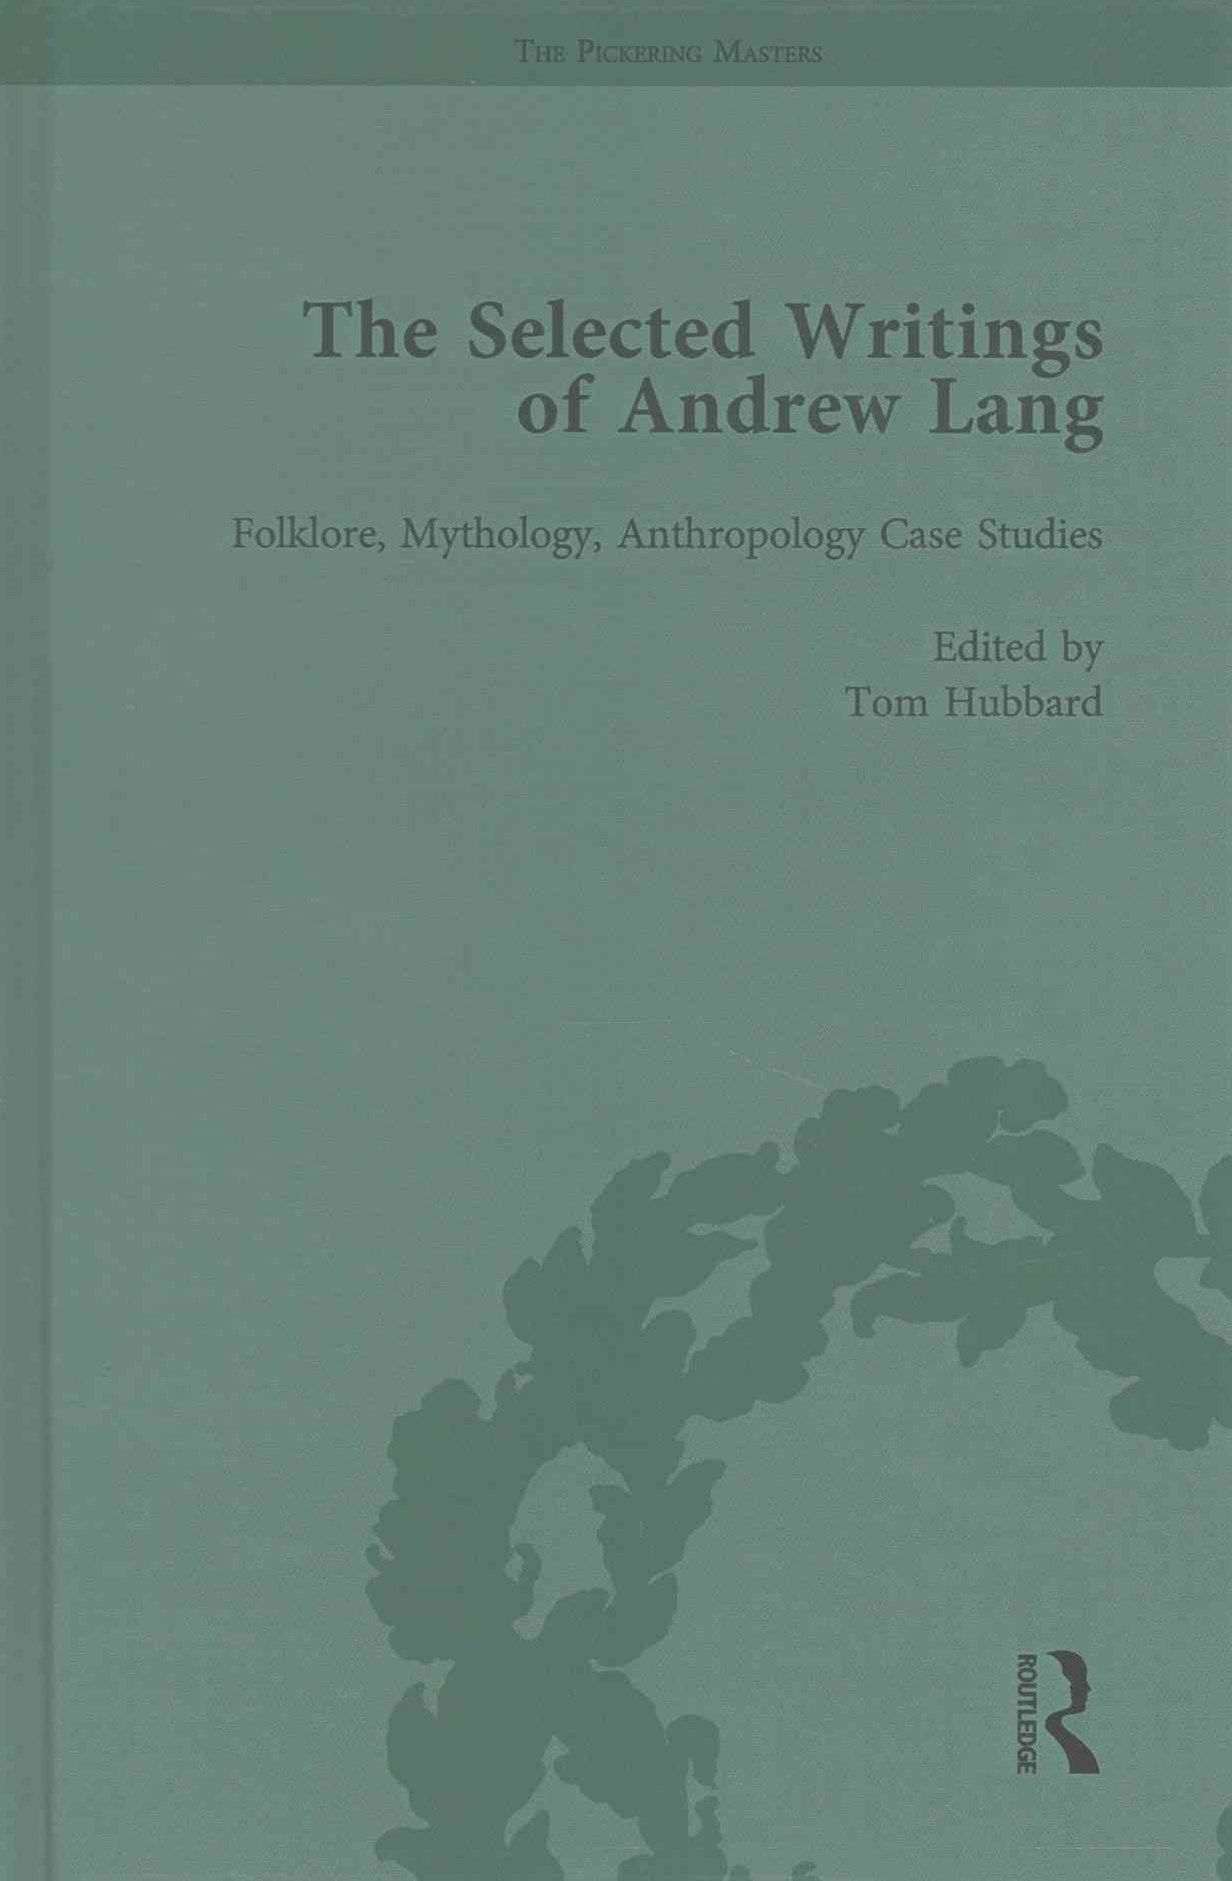 The Selected Writings of Andrew Lang